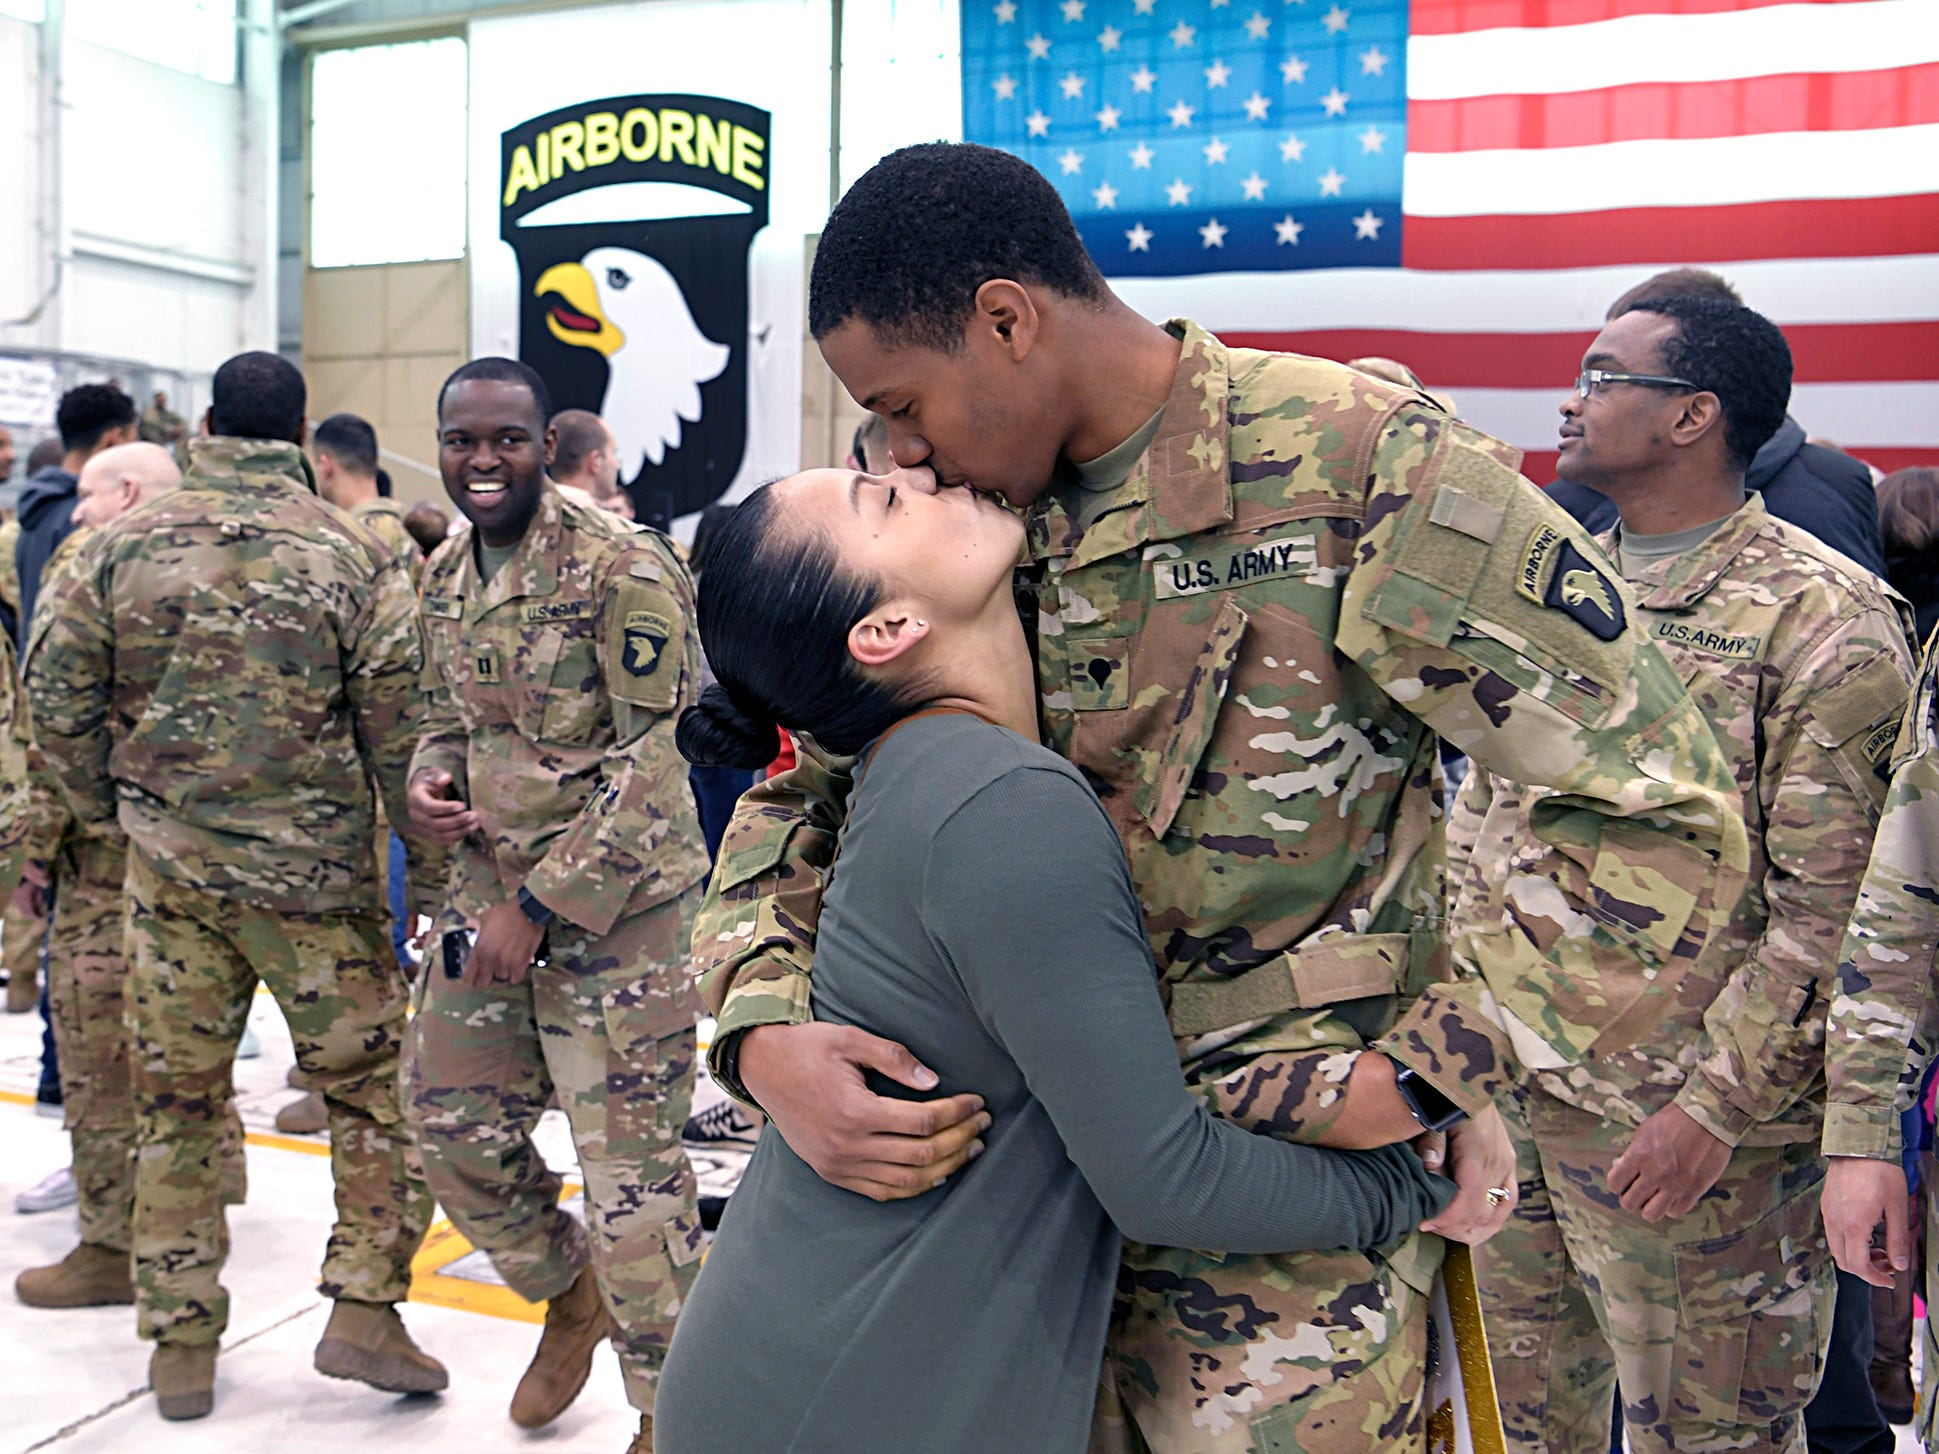 Family and friend welcome home soldiers from the 101st Combat Aviation Brigade, 101st Airborne Division (Air Assault) which returned to Fort Campbell, KY on Friday, Feb. 15, 2019 after a nine-month deployment to Afghanistan.